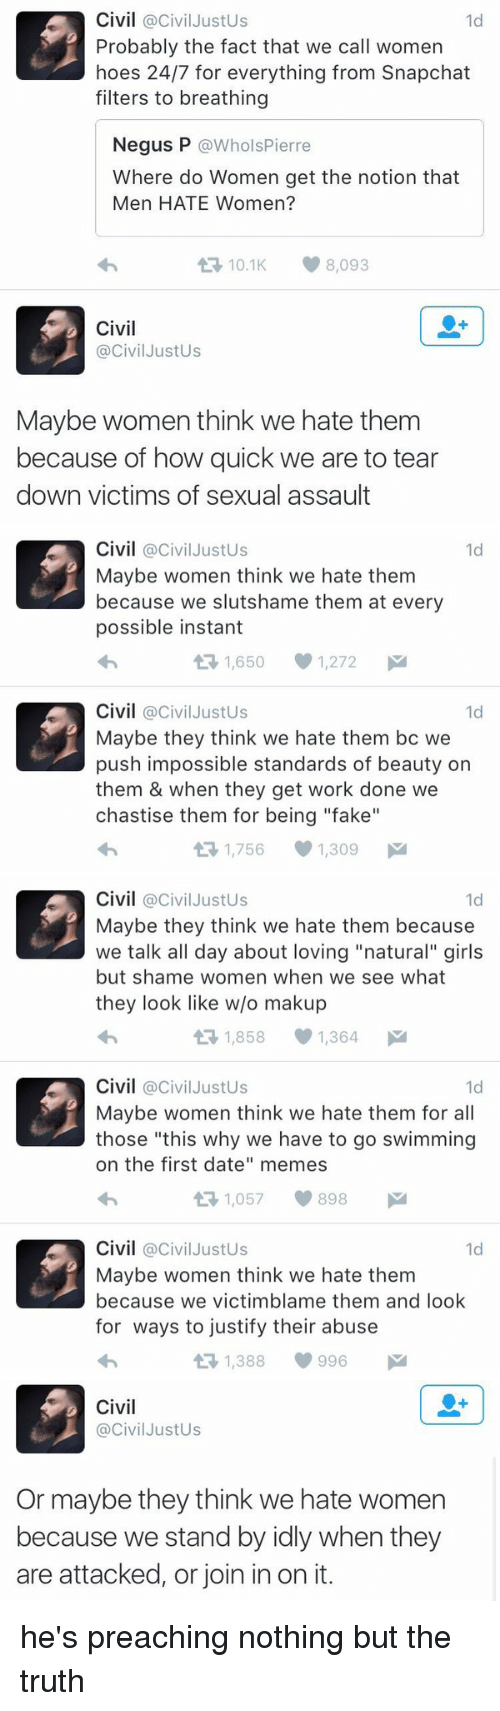 """Memes, Preach, and Justified: Civil @Civil Justus  1d  Probably the fact that we call women  hoes 24/7 for everything from Snapchat  filters to breathing  Negus P  @Whols Pierre  Where do Women get the notion that  Men HATE Women?  t 10.1 8,093  Civil  @Civil JustUs  Maybe women think we hate them  because of how quick we are to tear  down victims of sexual assault   Civil  @Civil Justus  1d  Maybe women think we hate them  because we slutshame them at every  possible instant  1,650 1,272  M  t Civil  Civil JustUs  1d  Maybe they think we hate them bc we  push impossible standards of beauty on  them & when they get work done we  chastise them for being """"fake""""  1,756 1,309  M   Civil  @Civil Justus  1d  Maybe they think we hate them because  we talk all day about loving """"natural"""" girls  but shame women when we see what  they look like w/o makup  1,858 1,364  M  t Civil  @Civil Justus  1d  Maybe women think we hate them for all  those """"this why we have to go swimming  on the first date"""" memes  1,057 898  M  t Civil  @Civil Justus  1d  Maybe women think we hate them  because we victimblame them and look  for ways to justify their abuse  t 1,388 996   Civil  Civil JustUs  Or maybe they think we hate women  because we stand by idly when they  are attacked, or join in on it. he's preaching nothing but the truth"""